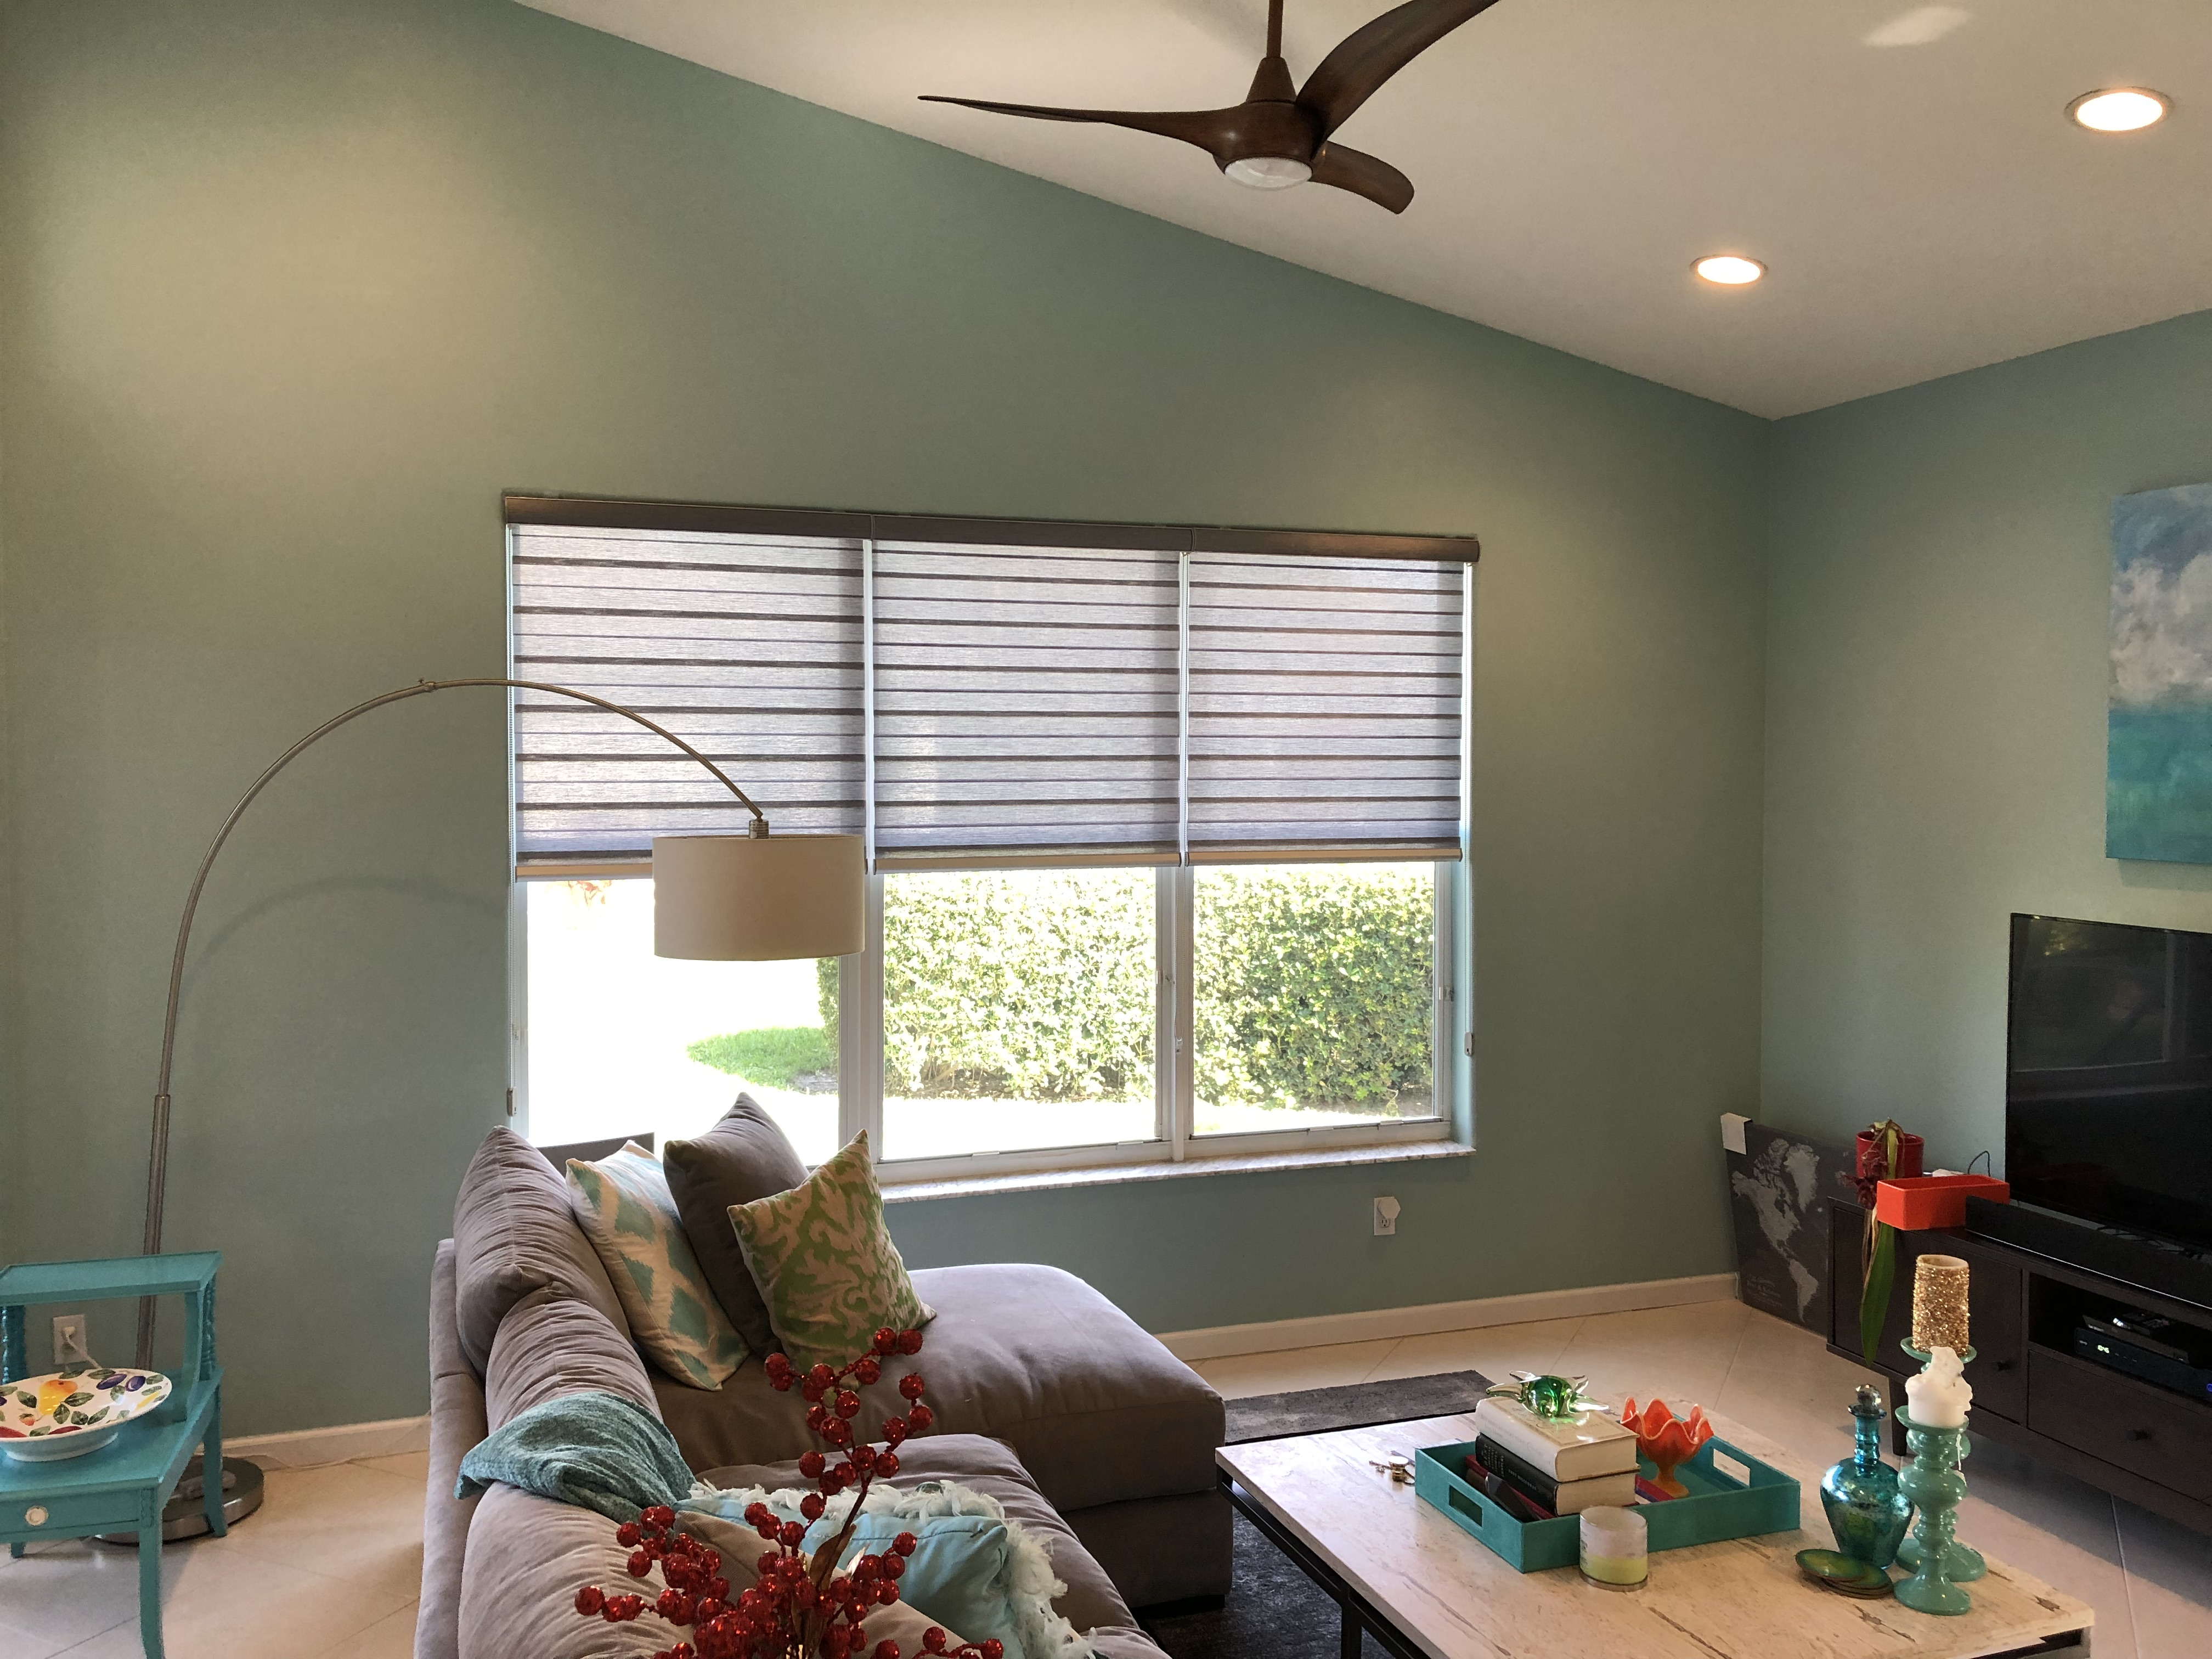 What are transitional shades and how do they work?-All Kinds of Blinds of South Florida